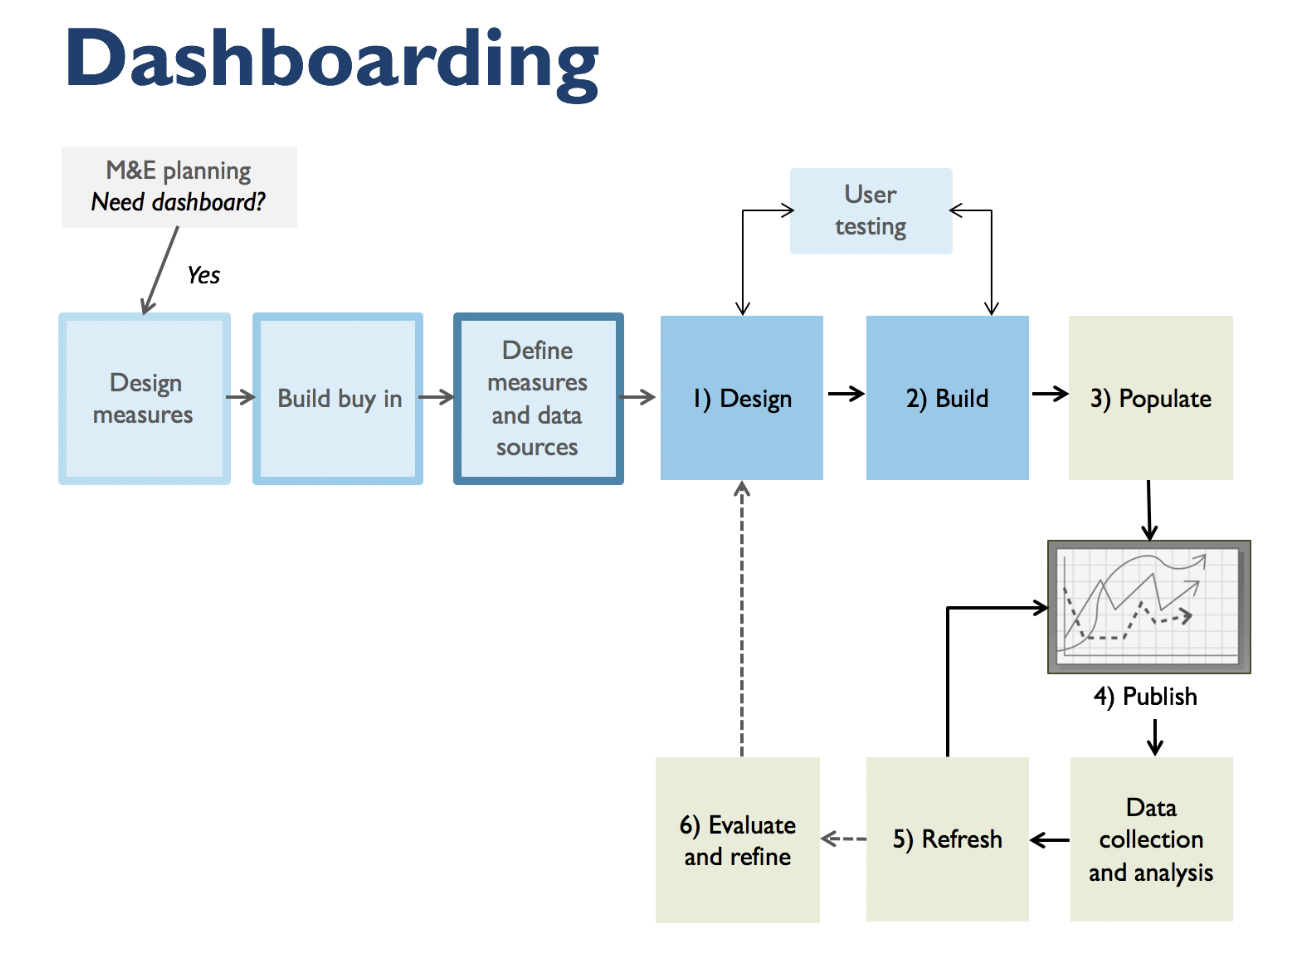 Dashboarding diagram